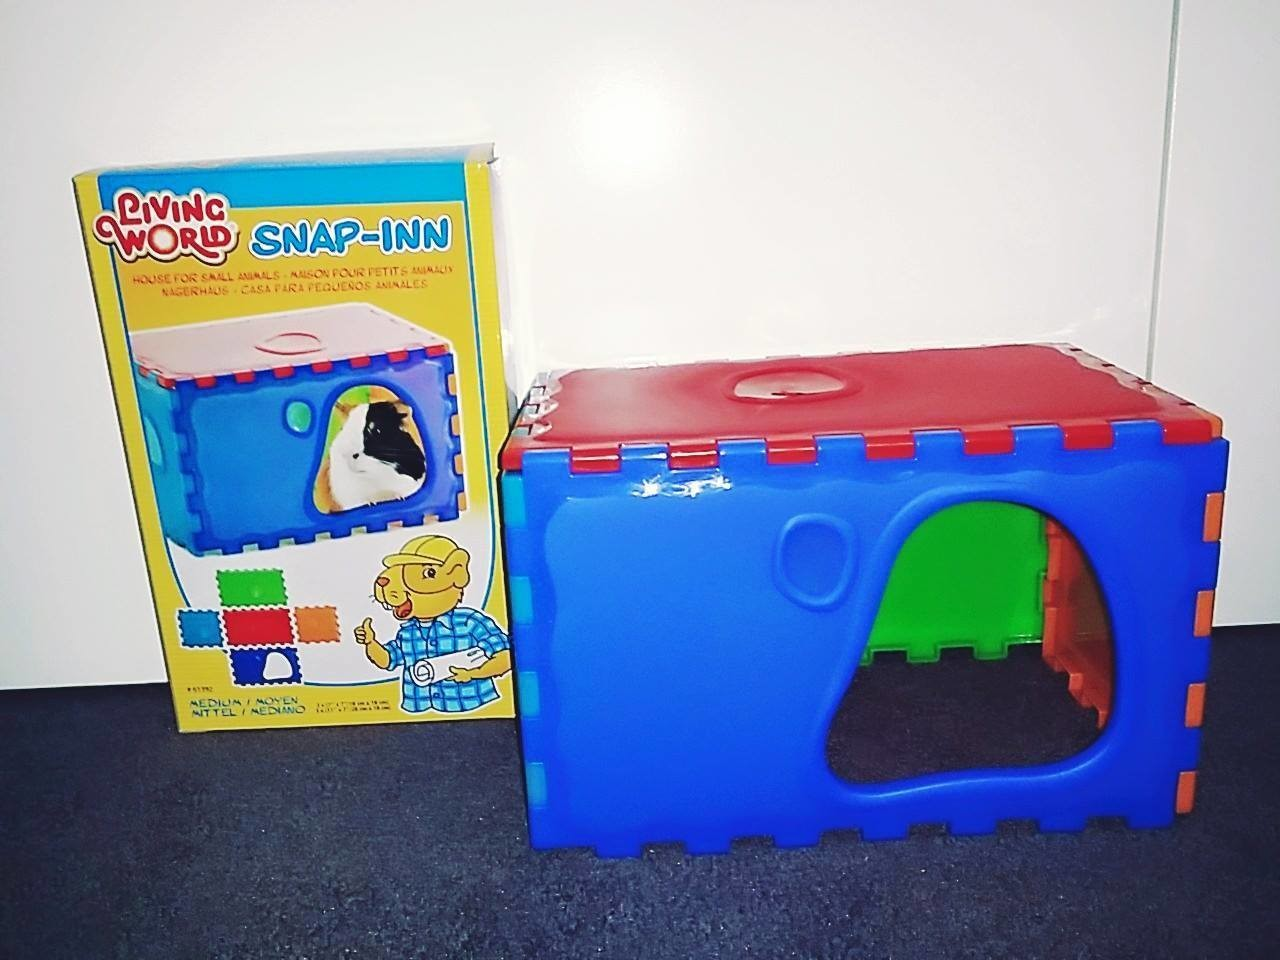 Medium Living World SNAP-INN #61392 House/Maze for Small Animals